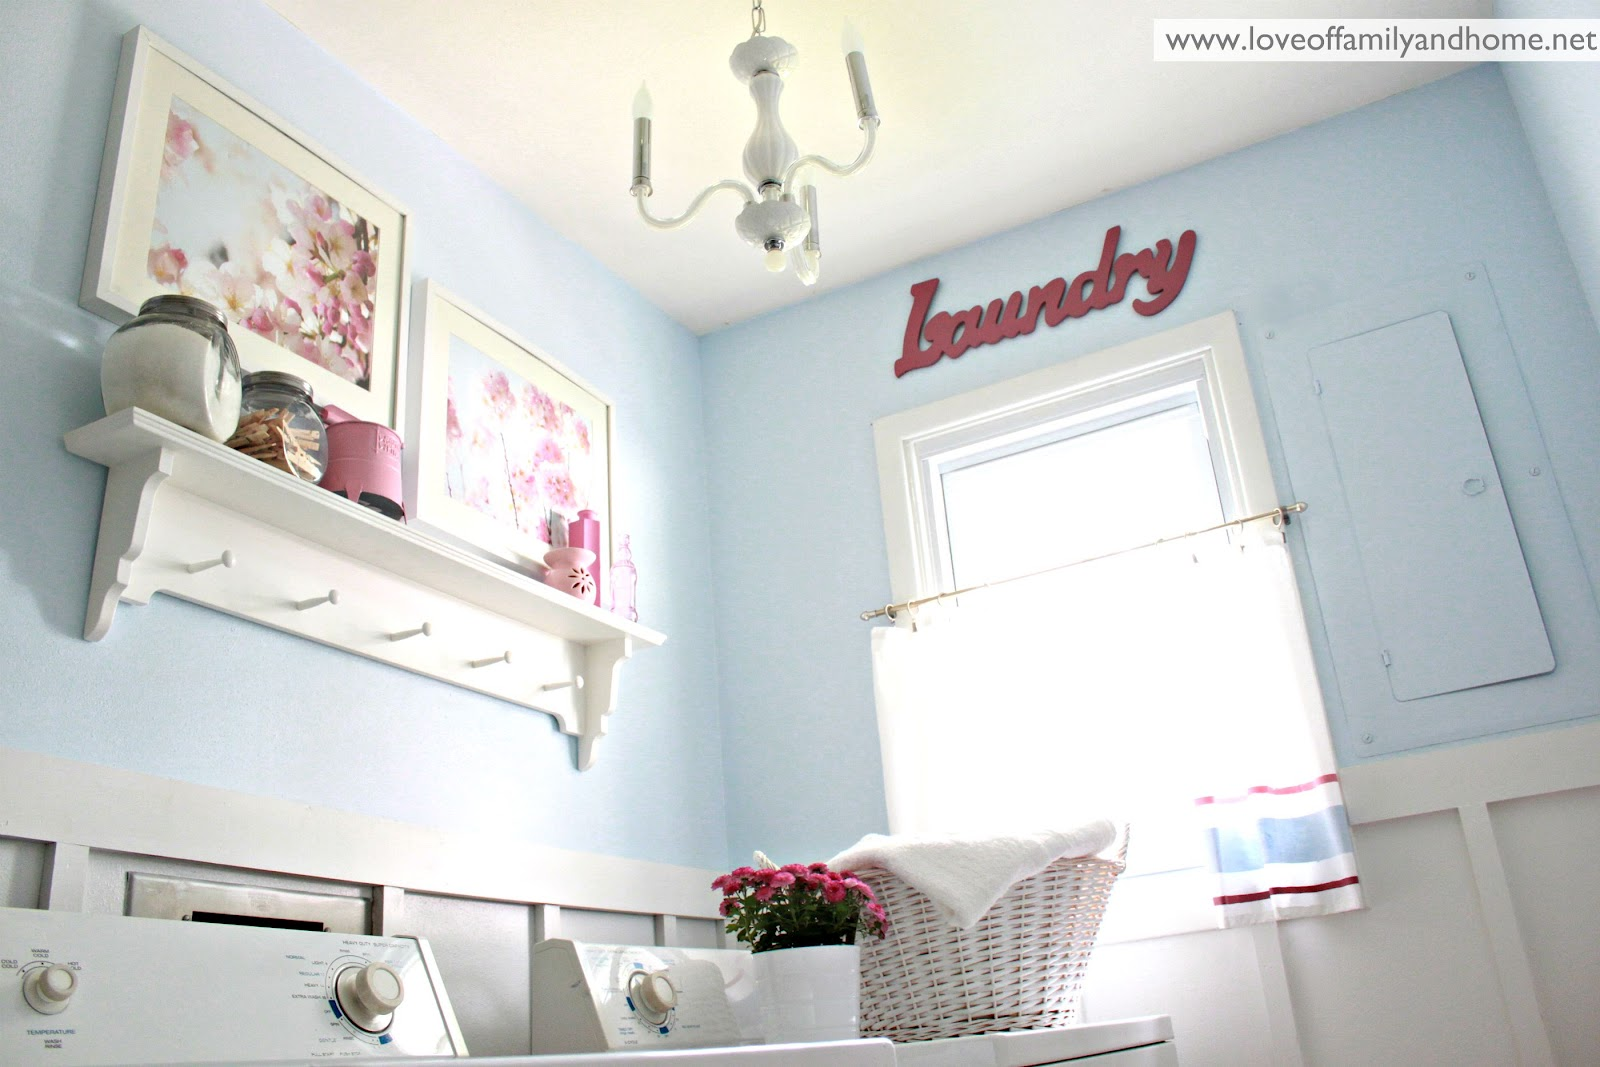 Laundry Room Reveal - Love of Family & Home